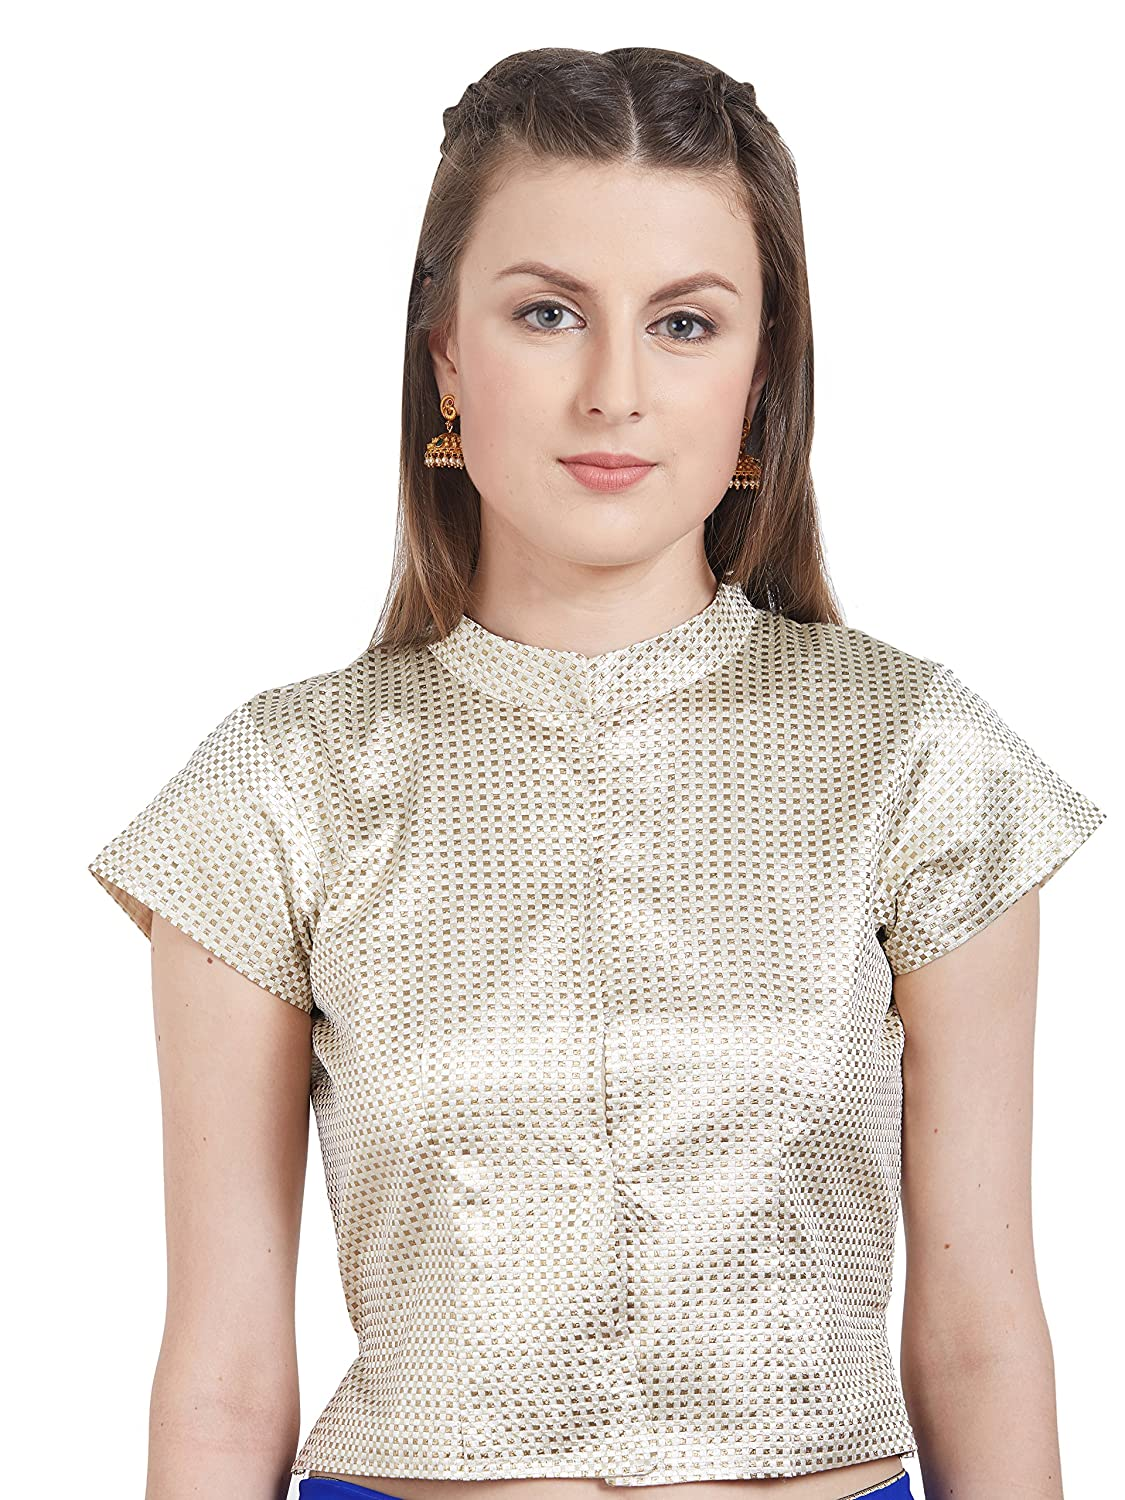 4ddefbe0 Blouse Pattern: High Neck Polo Design Neck with Short Sleeves (Cup type:  Non-padded) Care: Hand or Light Machine Wash Note: Kindly choose as per  your size.